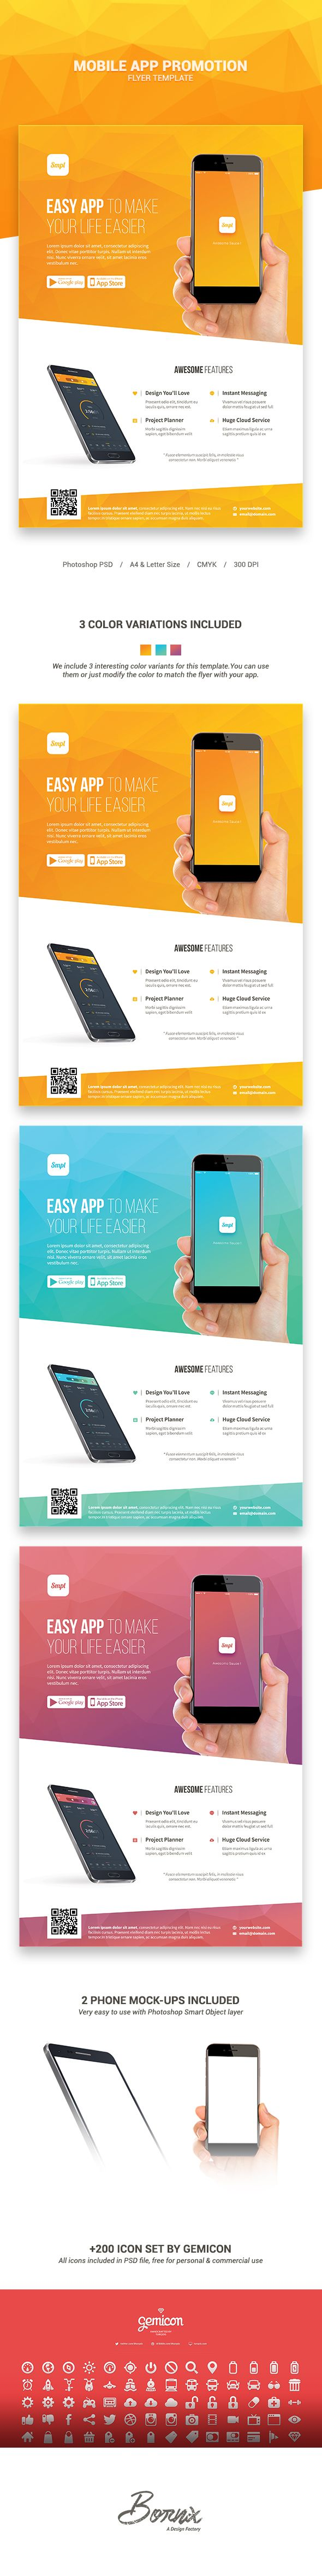 app promotional flyer promotional flyers flyer template and mobile app promotion flyer template